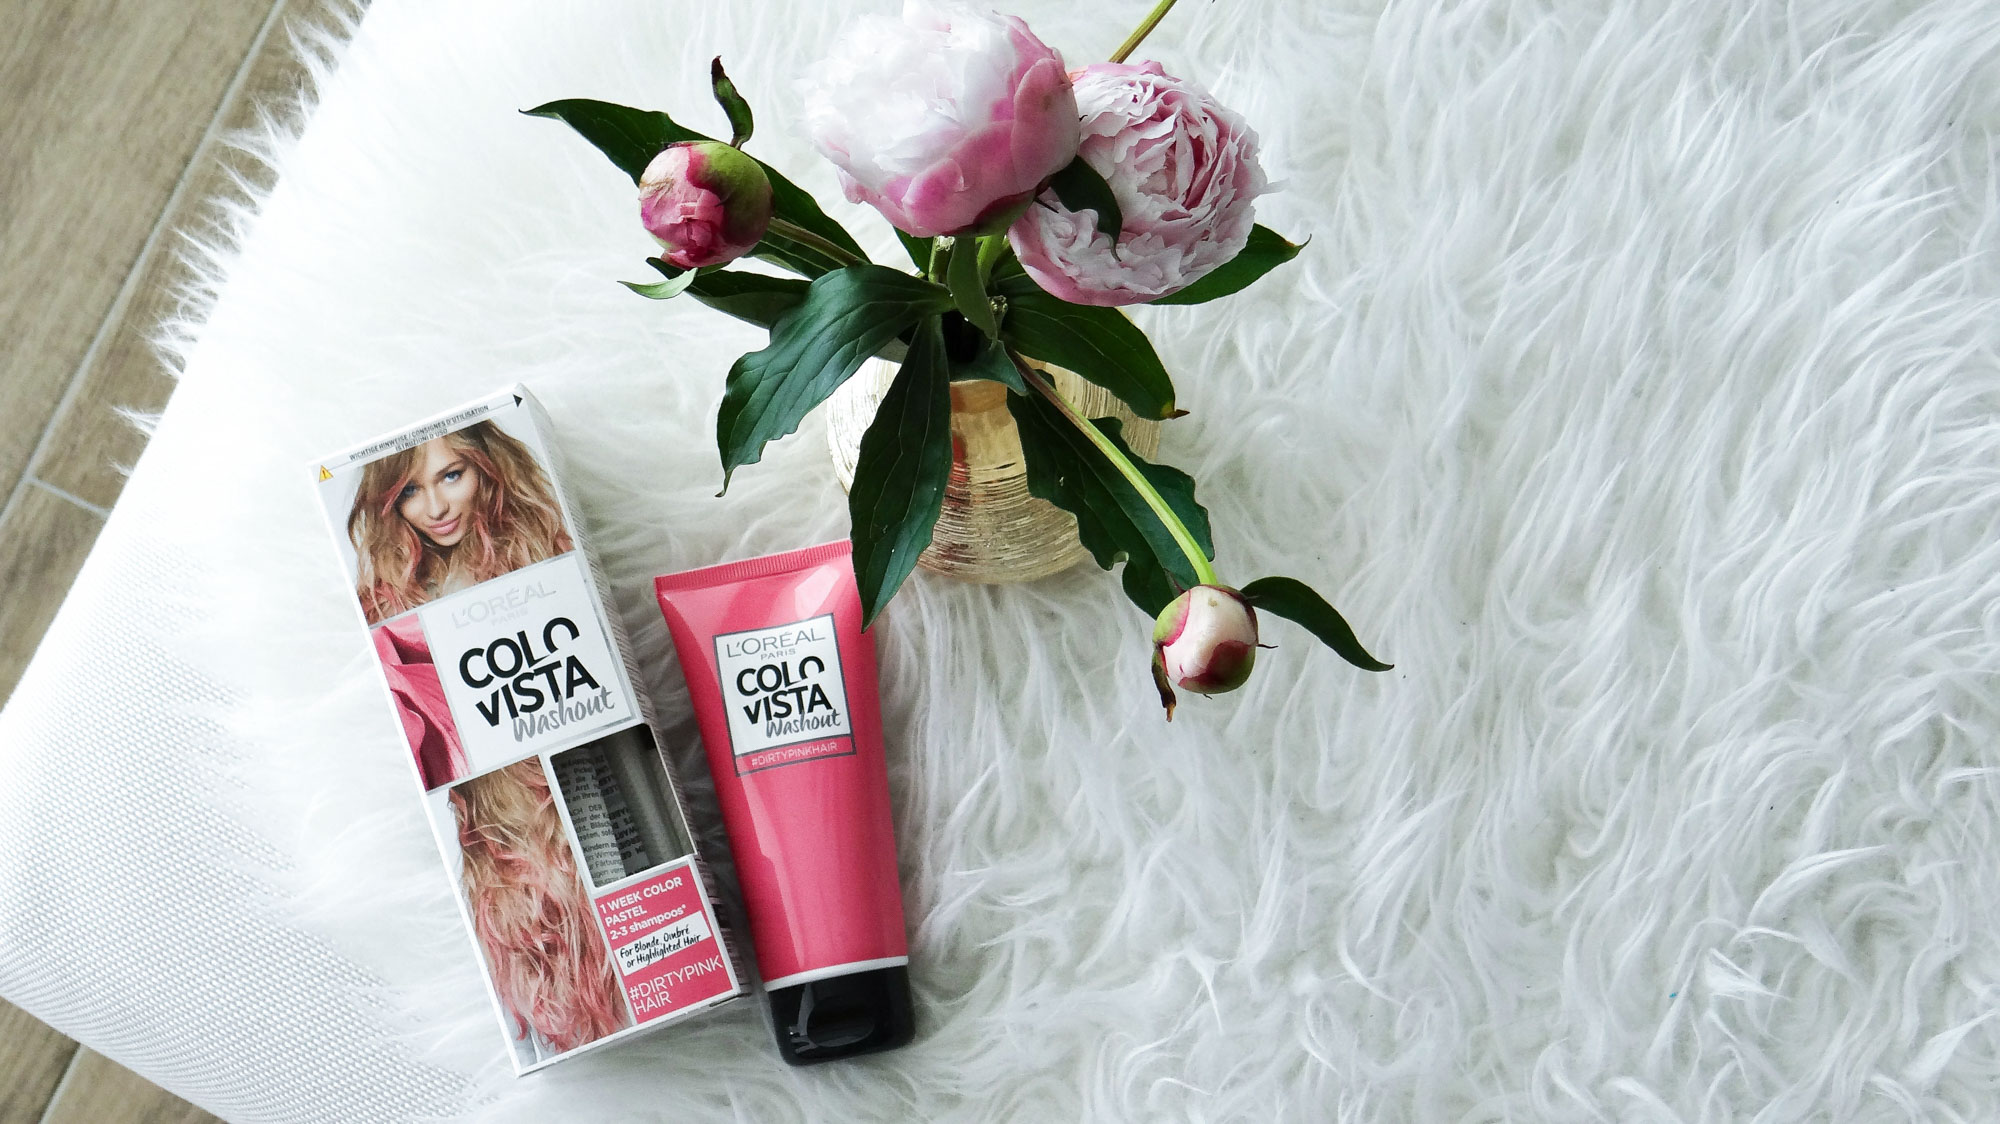 L'Oreal Colorista Washout Dirty Pink hair dye Cydonia review